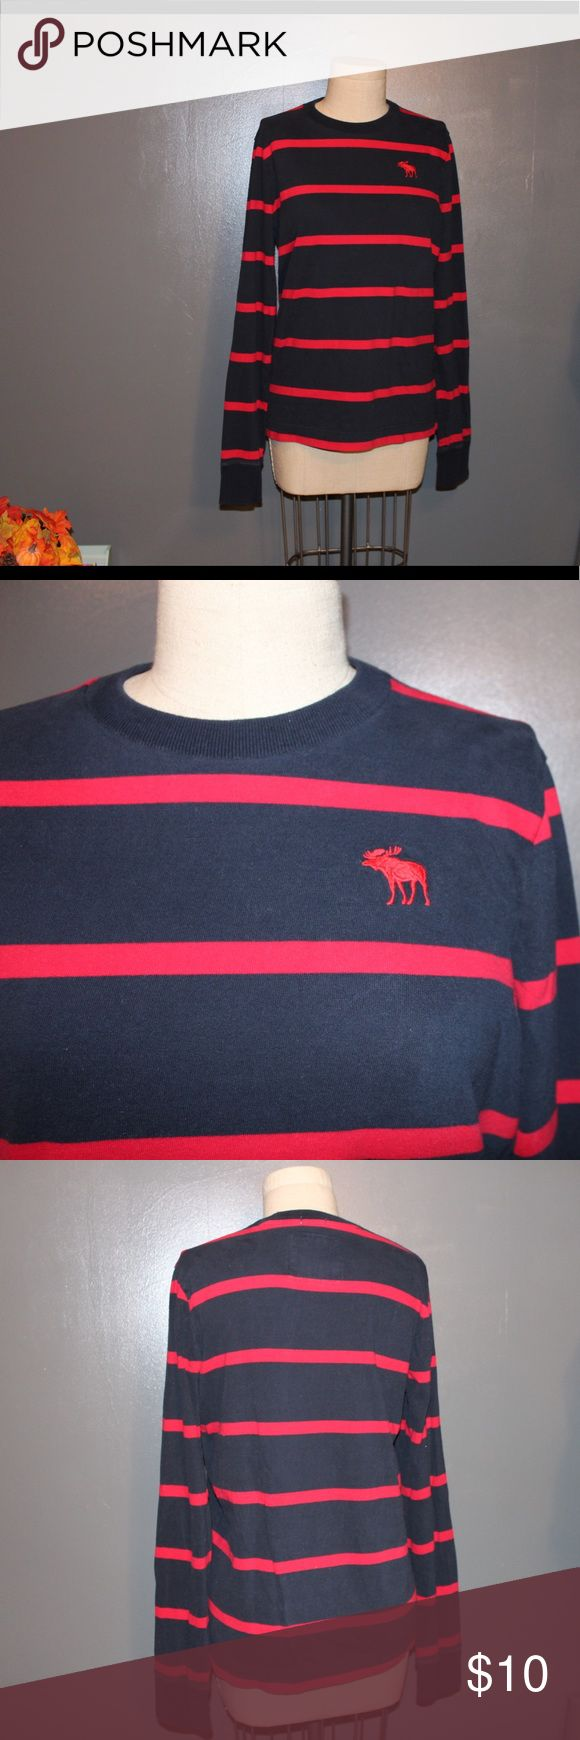 ABERCROMBIE Men's Longsleeve Previously Loved but no stains or major signs of wear this is dark blue and red striped Abercrombie & Fitch Shirts Tees - Long Sleeve